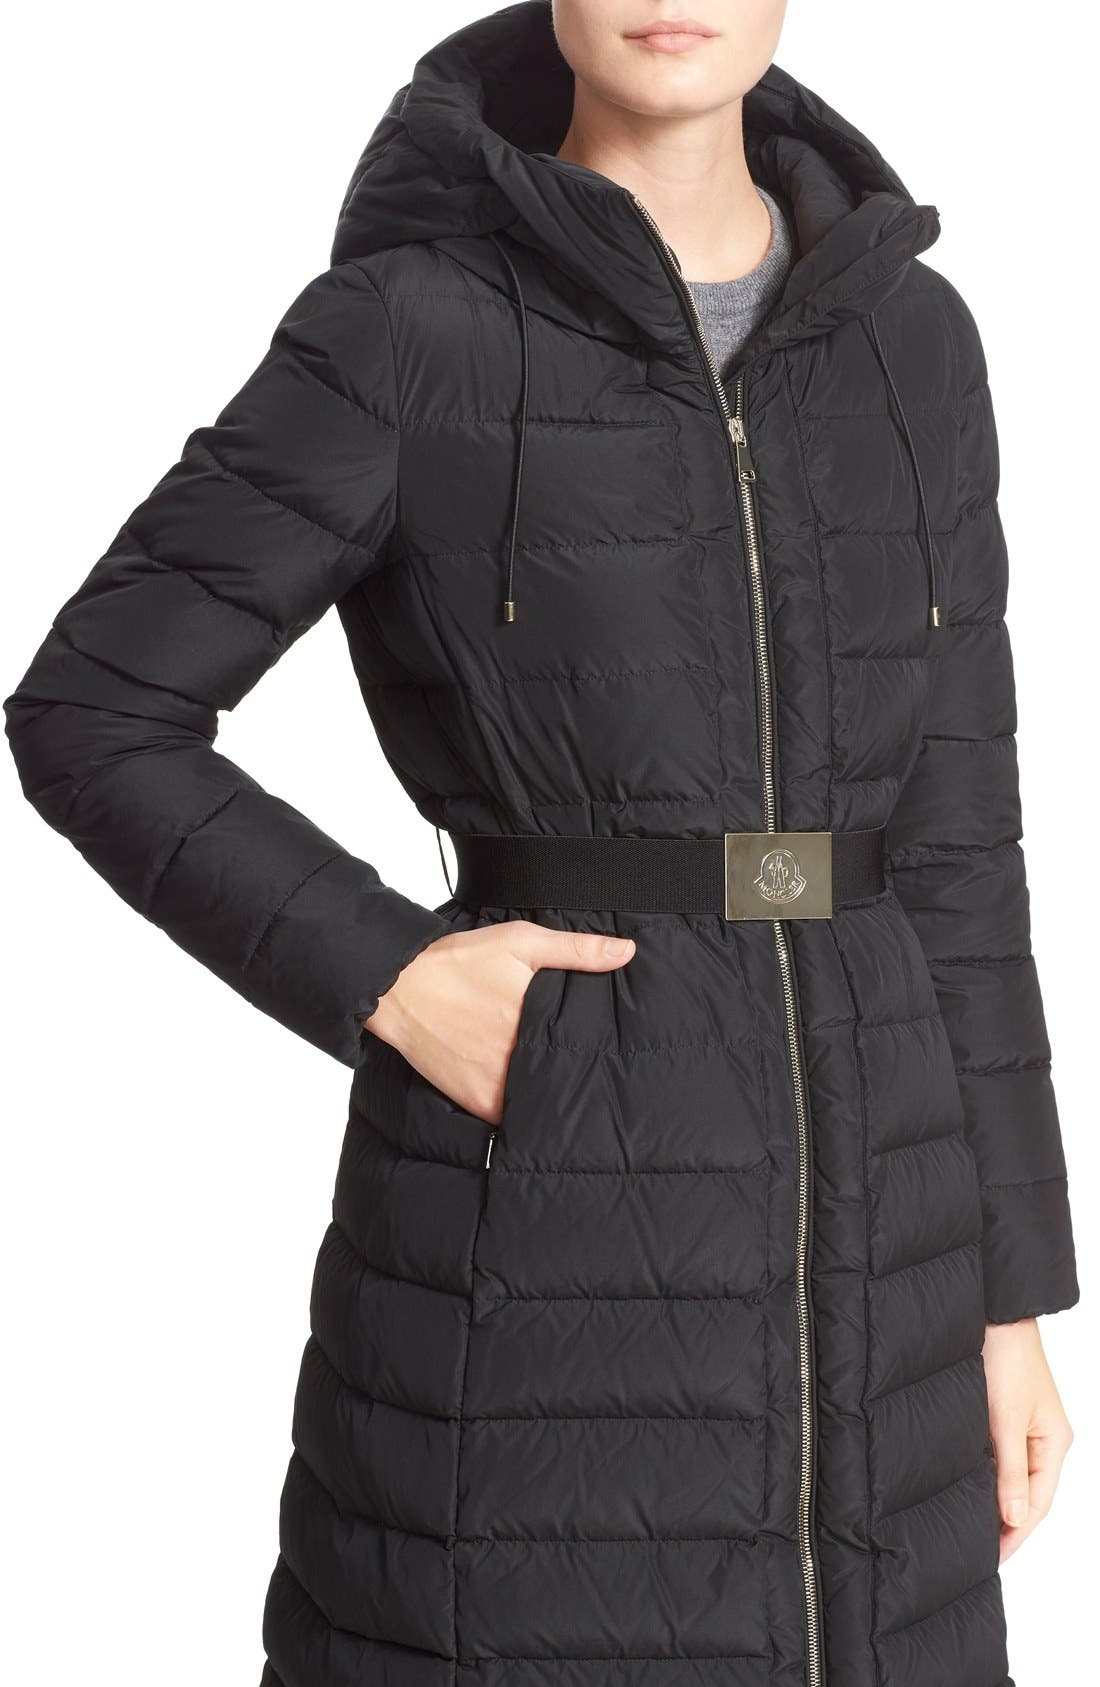 'Imin' Water Resistant Belted Down Puffer Coat,                             Alternate thumbnail 7, color,                             Black